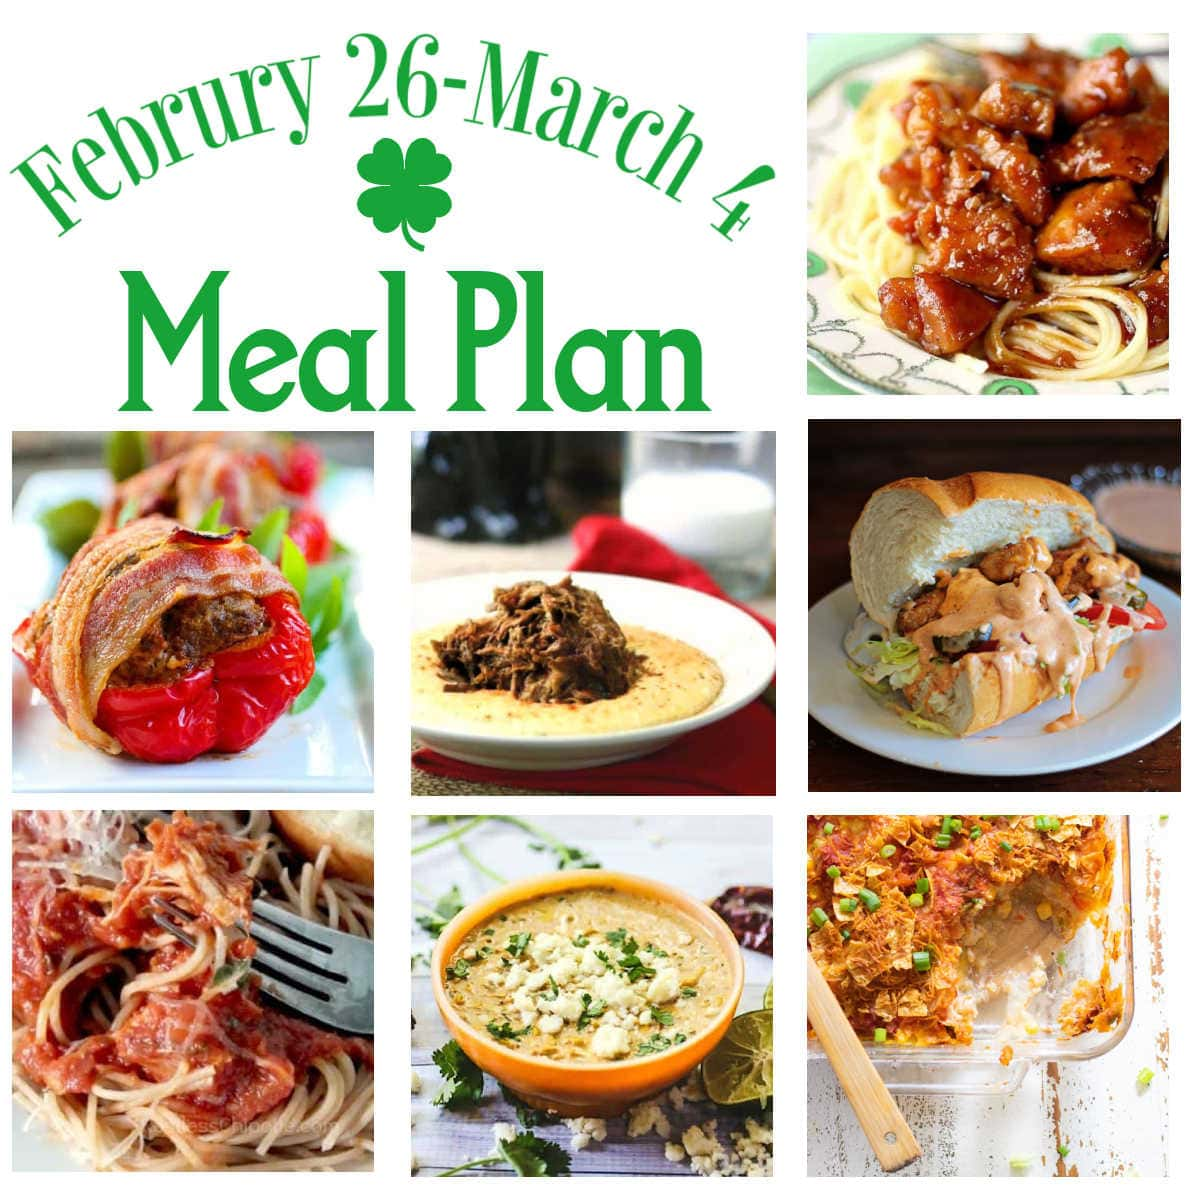 A collage of images from the main dishes in this week's meal plan.